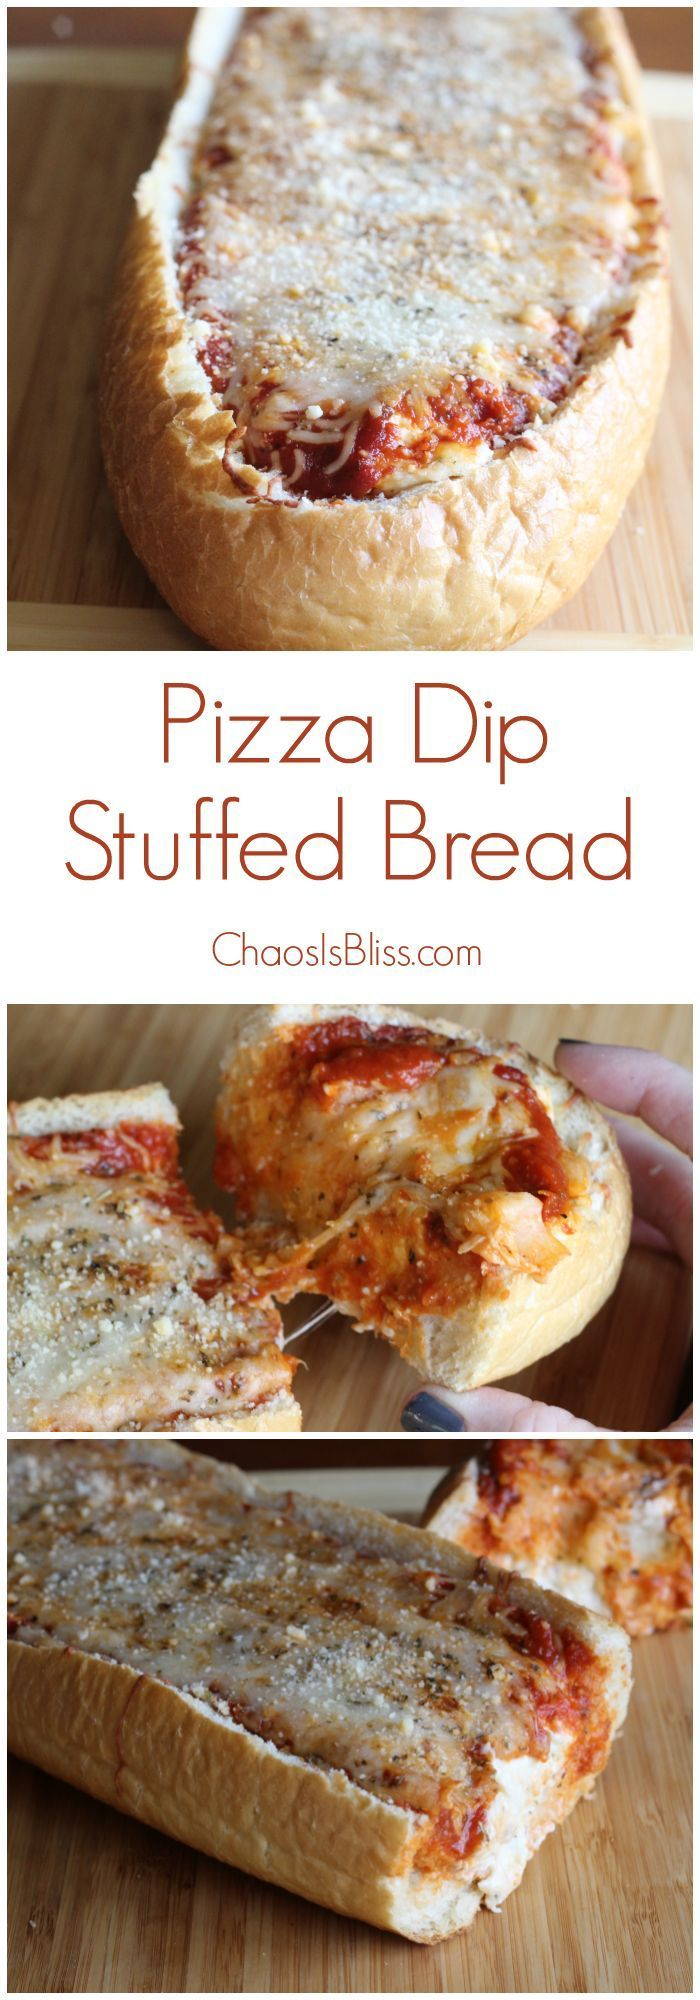 Next time you need a party appetizer, try Pizza Dip Stuffed Bread! Savory and very filling appetizer recipe.